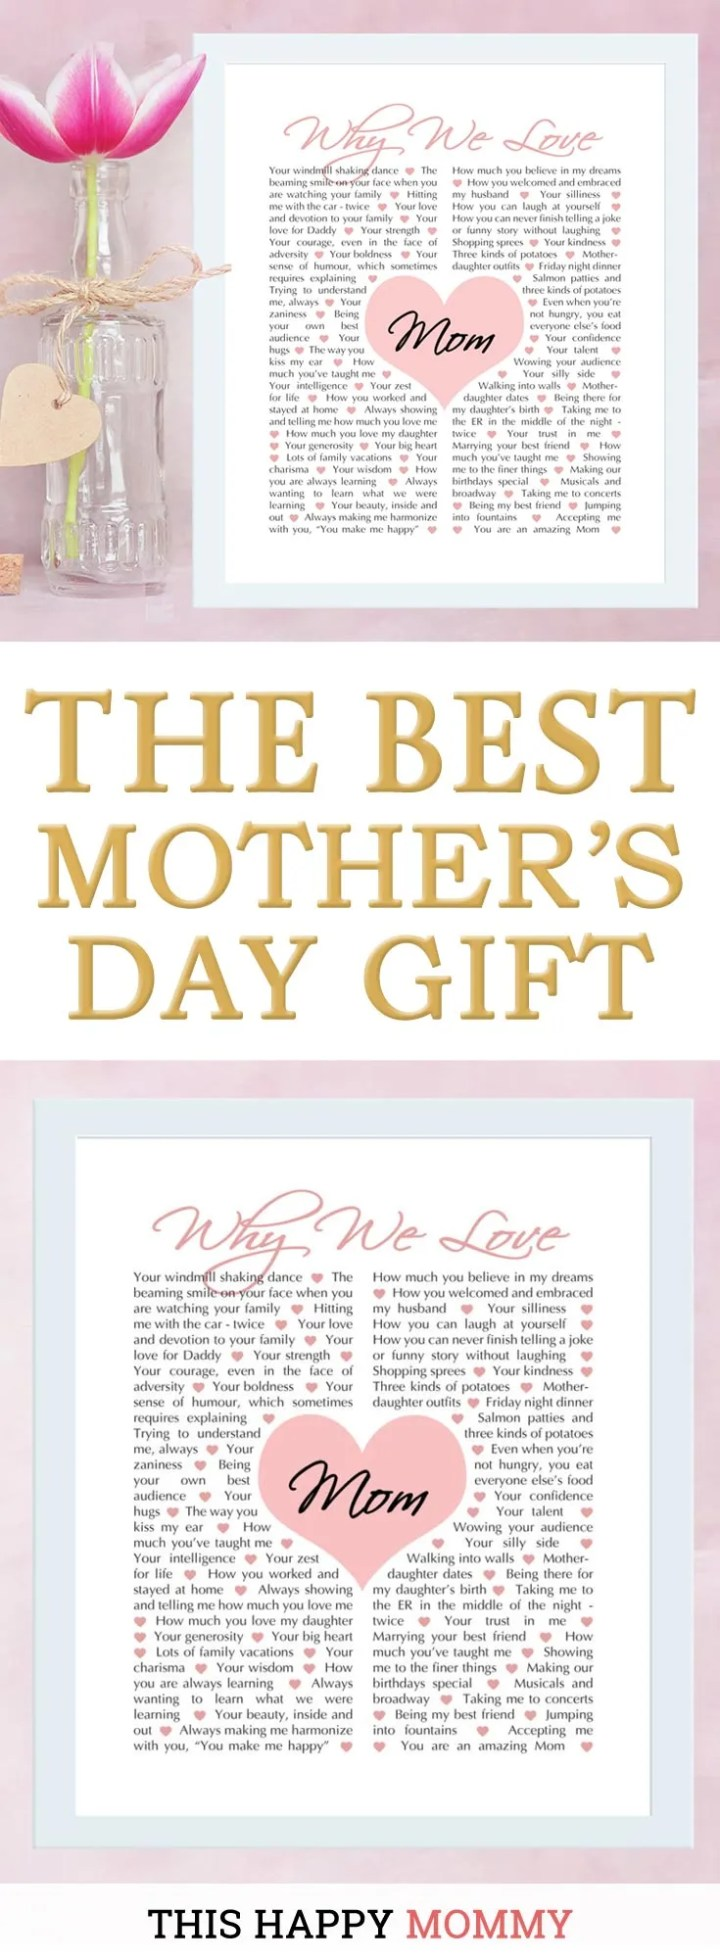 Mom loves you unconditionally. Give mom a gift that tells her all the reasons you love her with Why We Love Mom.   why we love mom gift  mother's day gift  birthday gift for mom   Easy DIY gifts   Unique DIY gifts   creative DIY gifts   birthday party gift for adults   #gifts #diy #mothersday #birthdaygift   thishappymommy.com